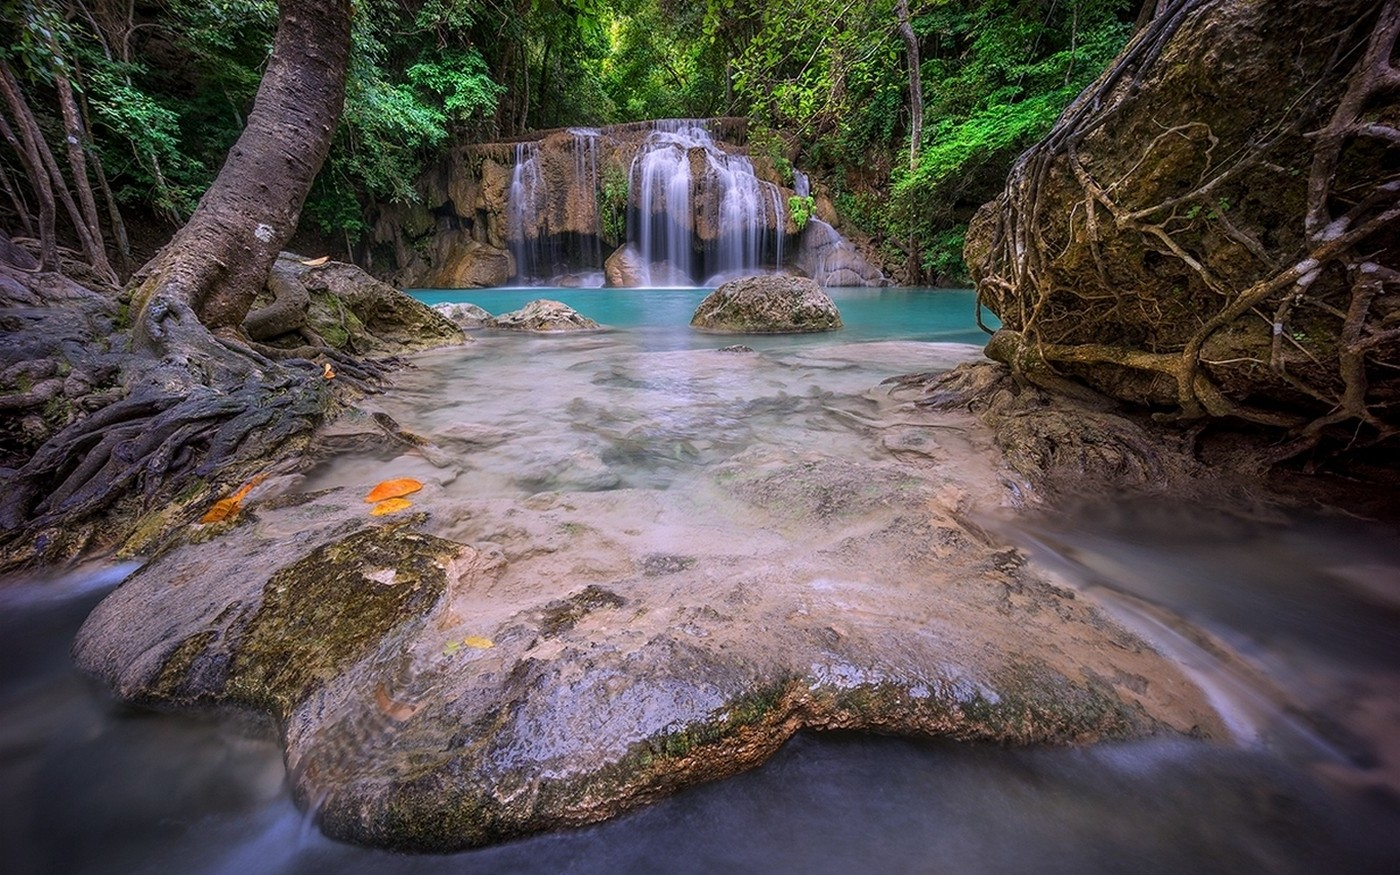 Anime Girls Wallpaper 5760x1080 Nature Landscape Thailand Waterfall Forest Roots